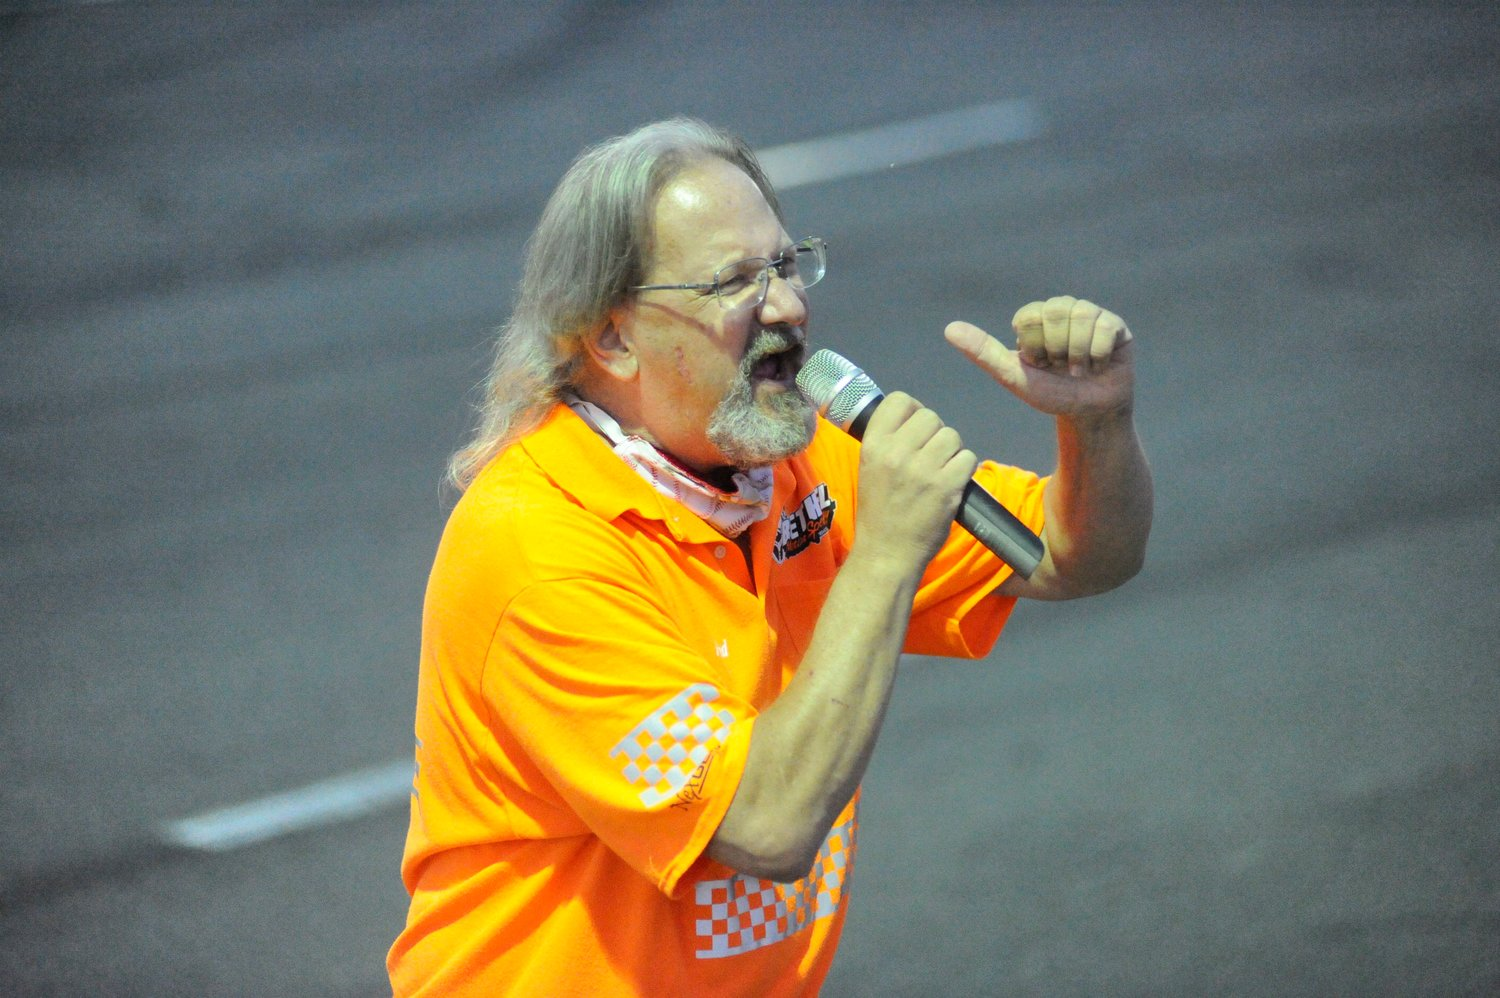 Let's hear it, folks! Fred Mulharin, the speedway's co-announcer, whips up the crowd during intermission.